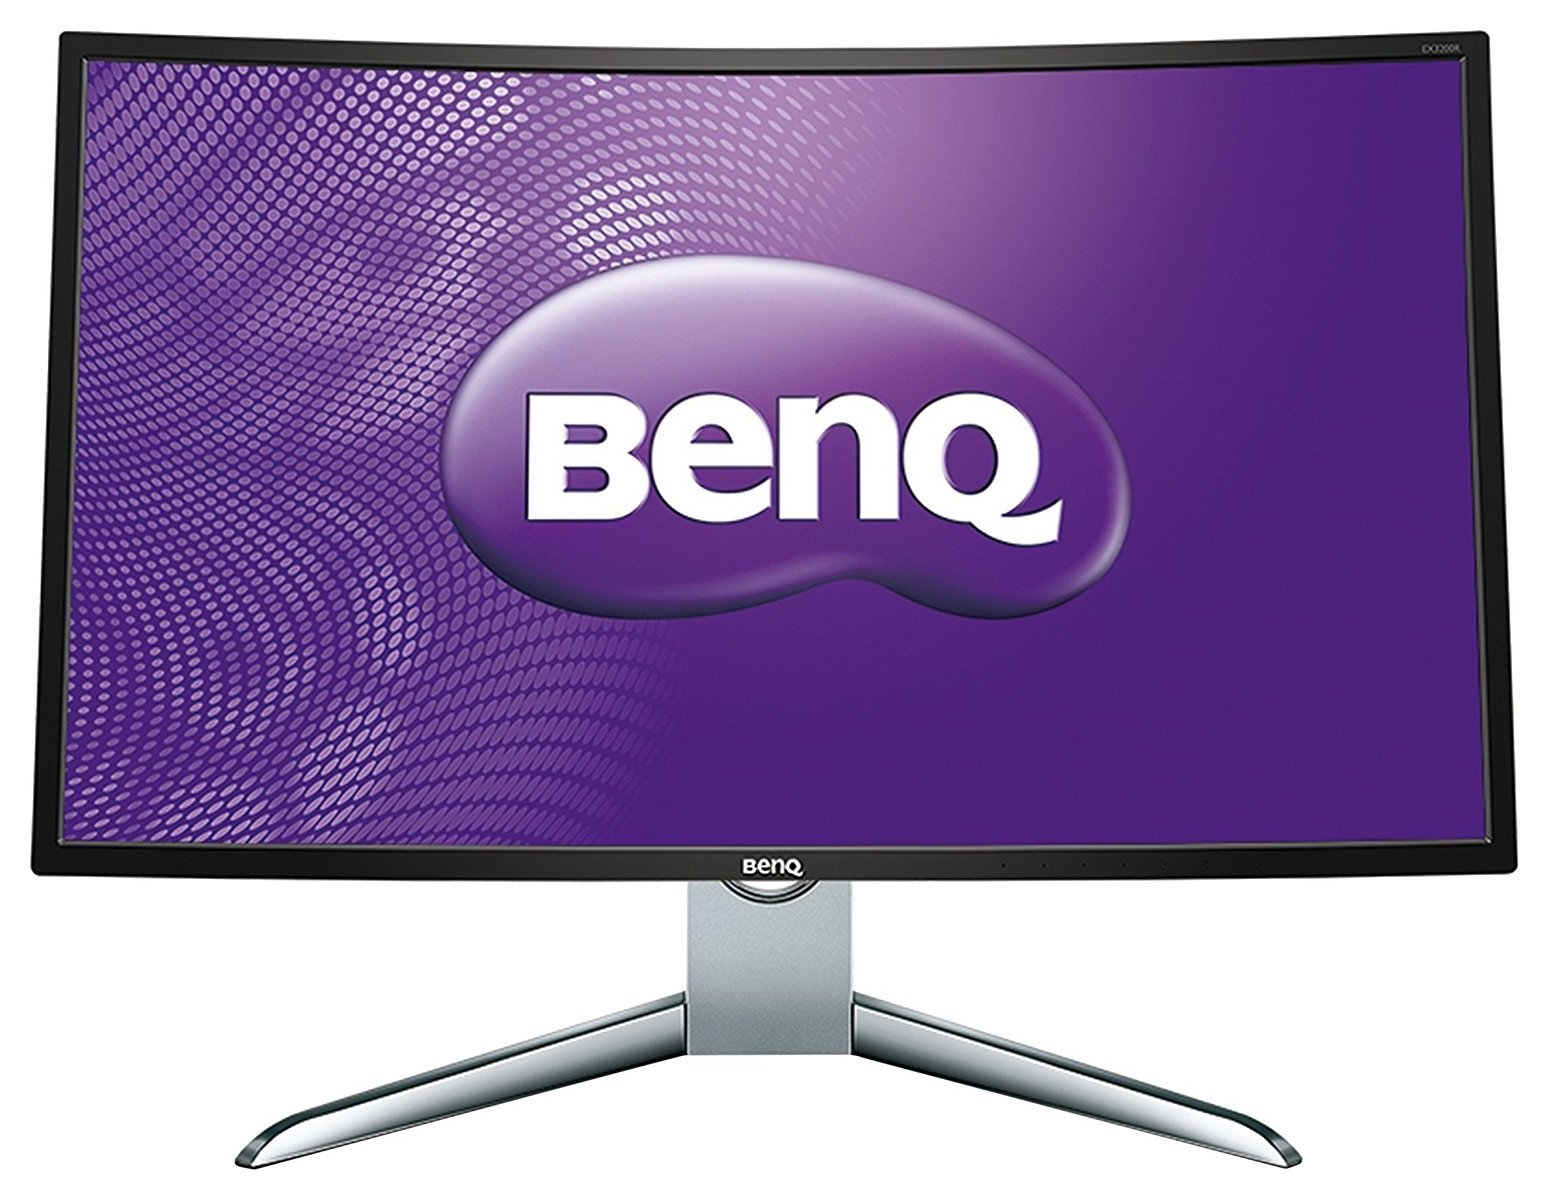 Image of Benq EX3200R LED 32 Inch Curved Monitor.